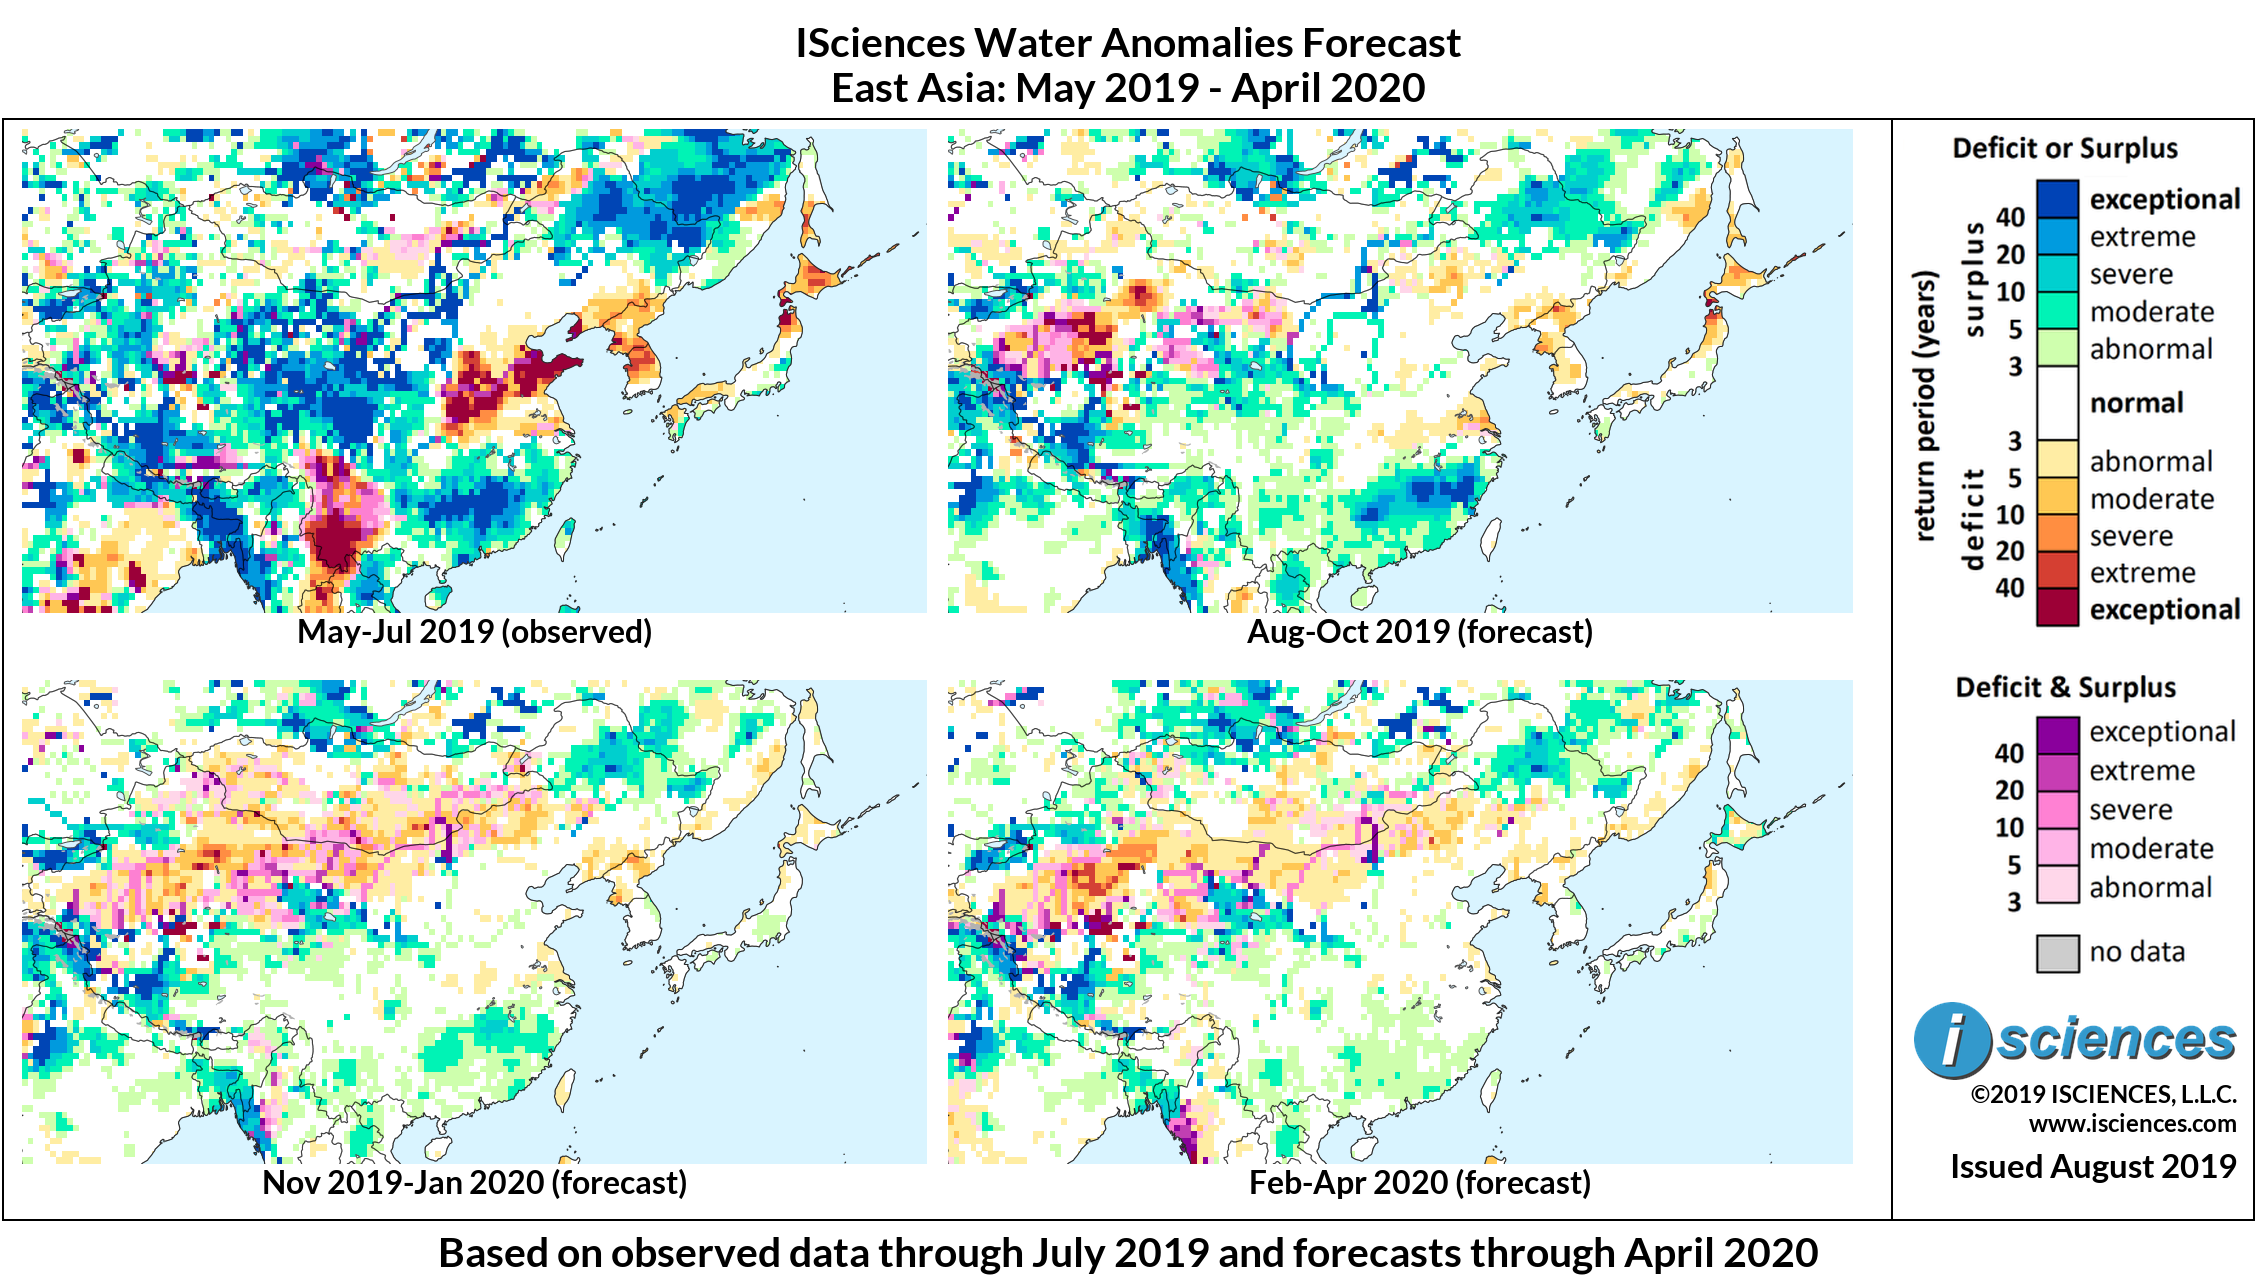 ISciences_East_Asia_Composite_Adjusted_201905-202004_3mo_panel.png